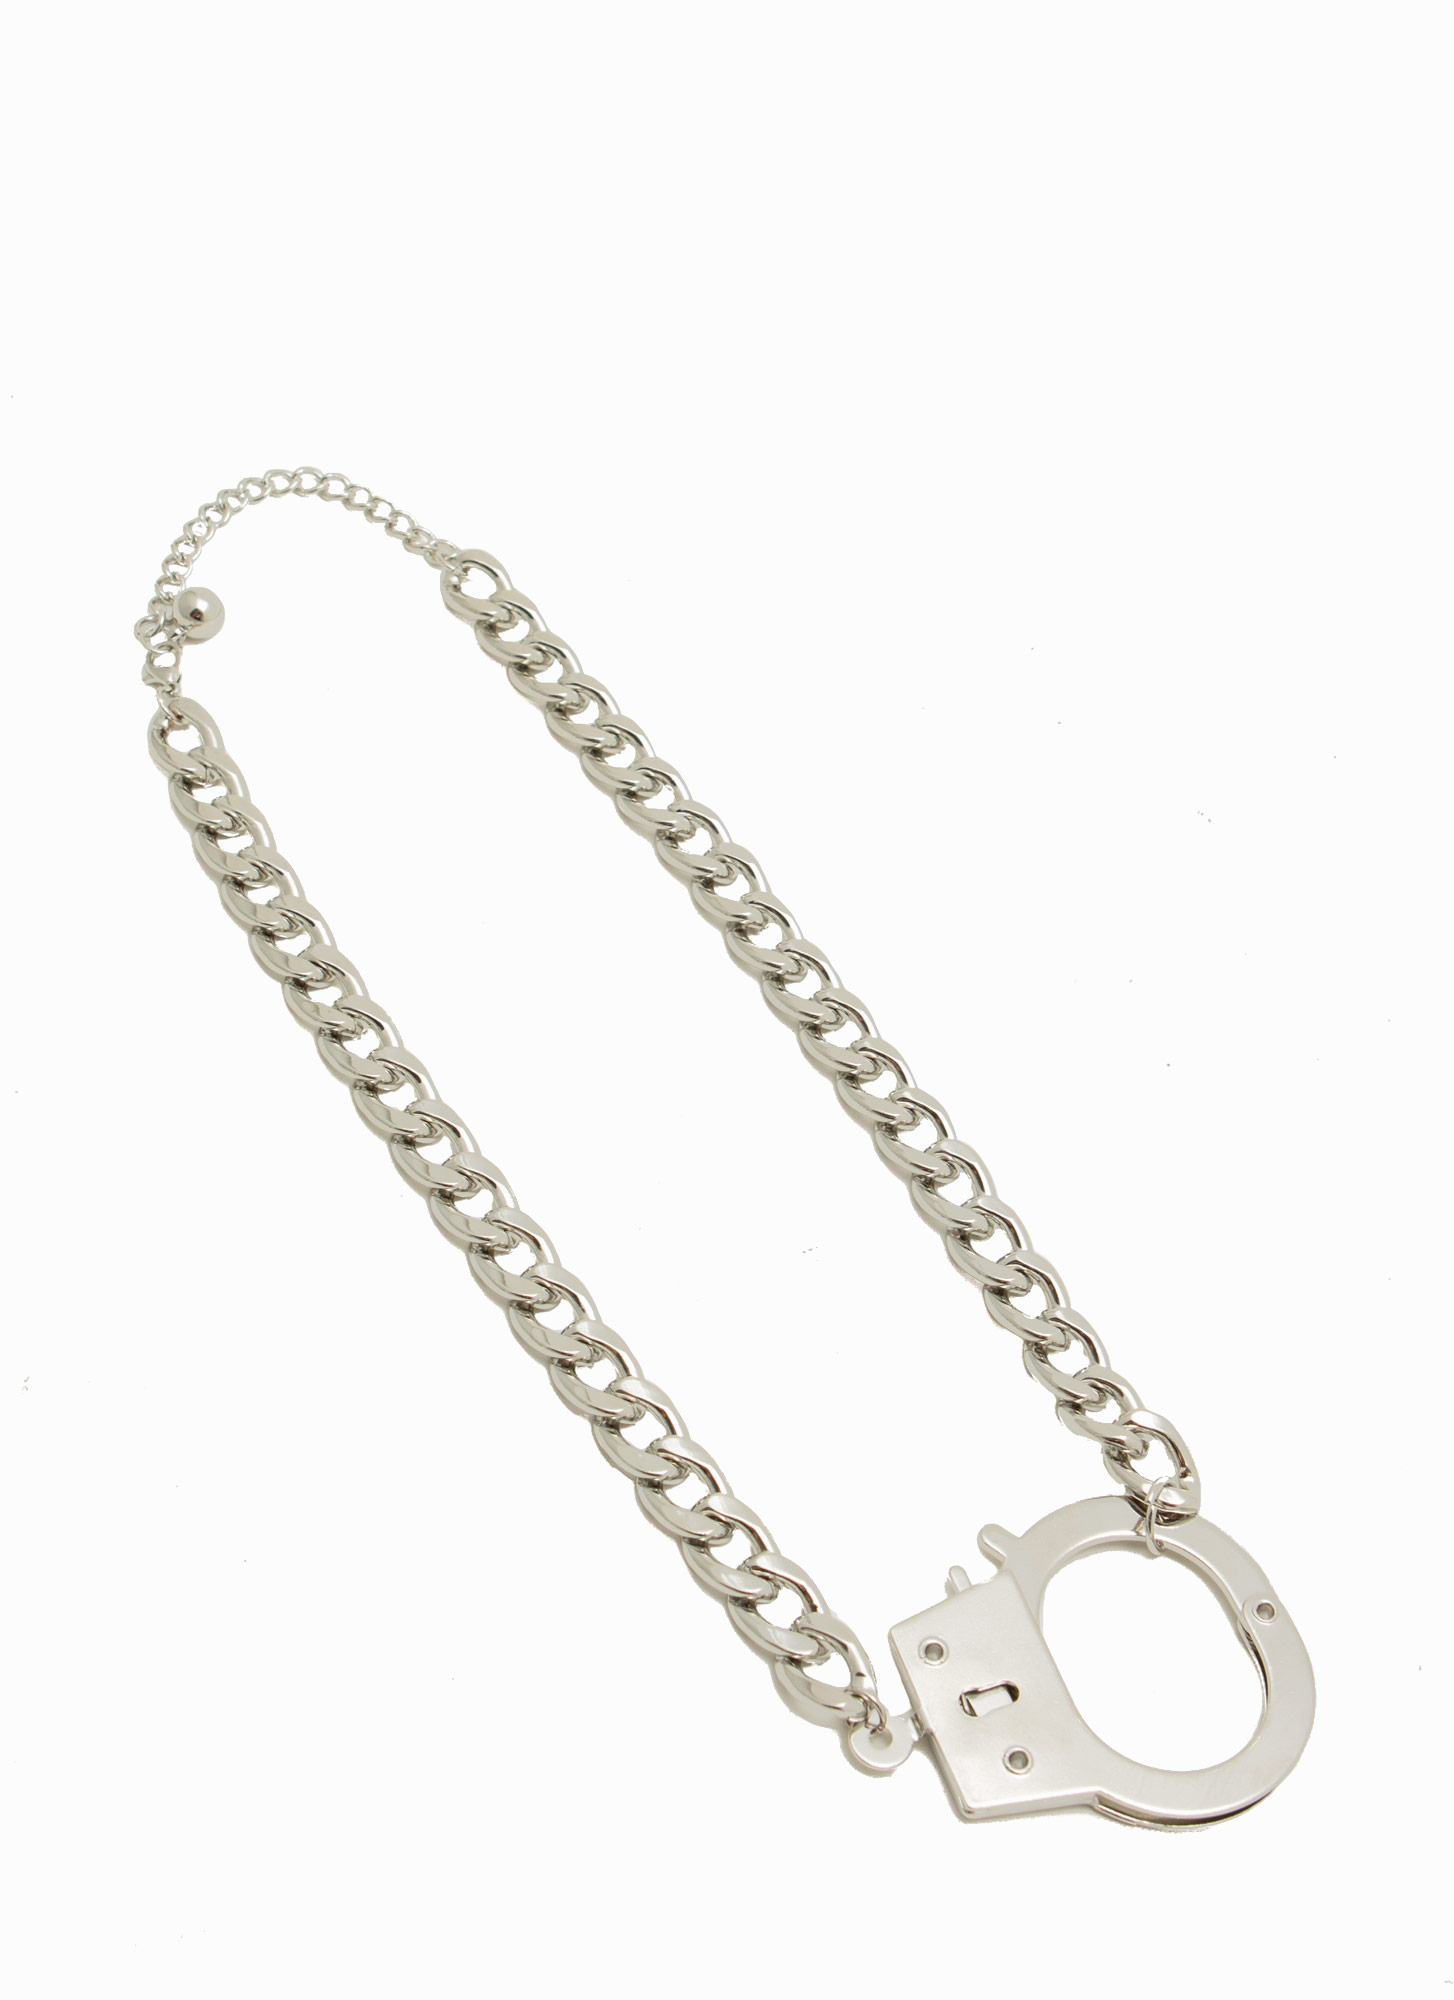 Get Cuffed Necklace SILVER